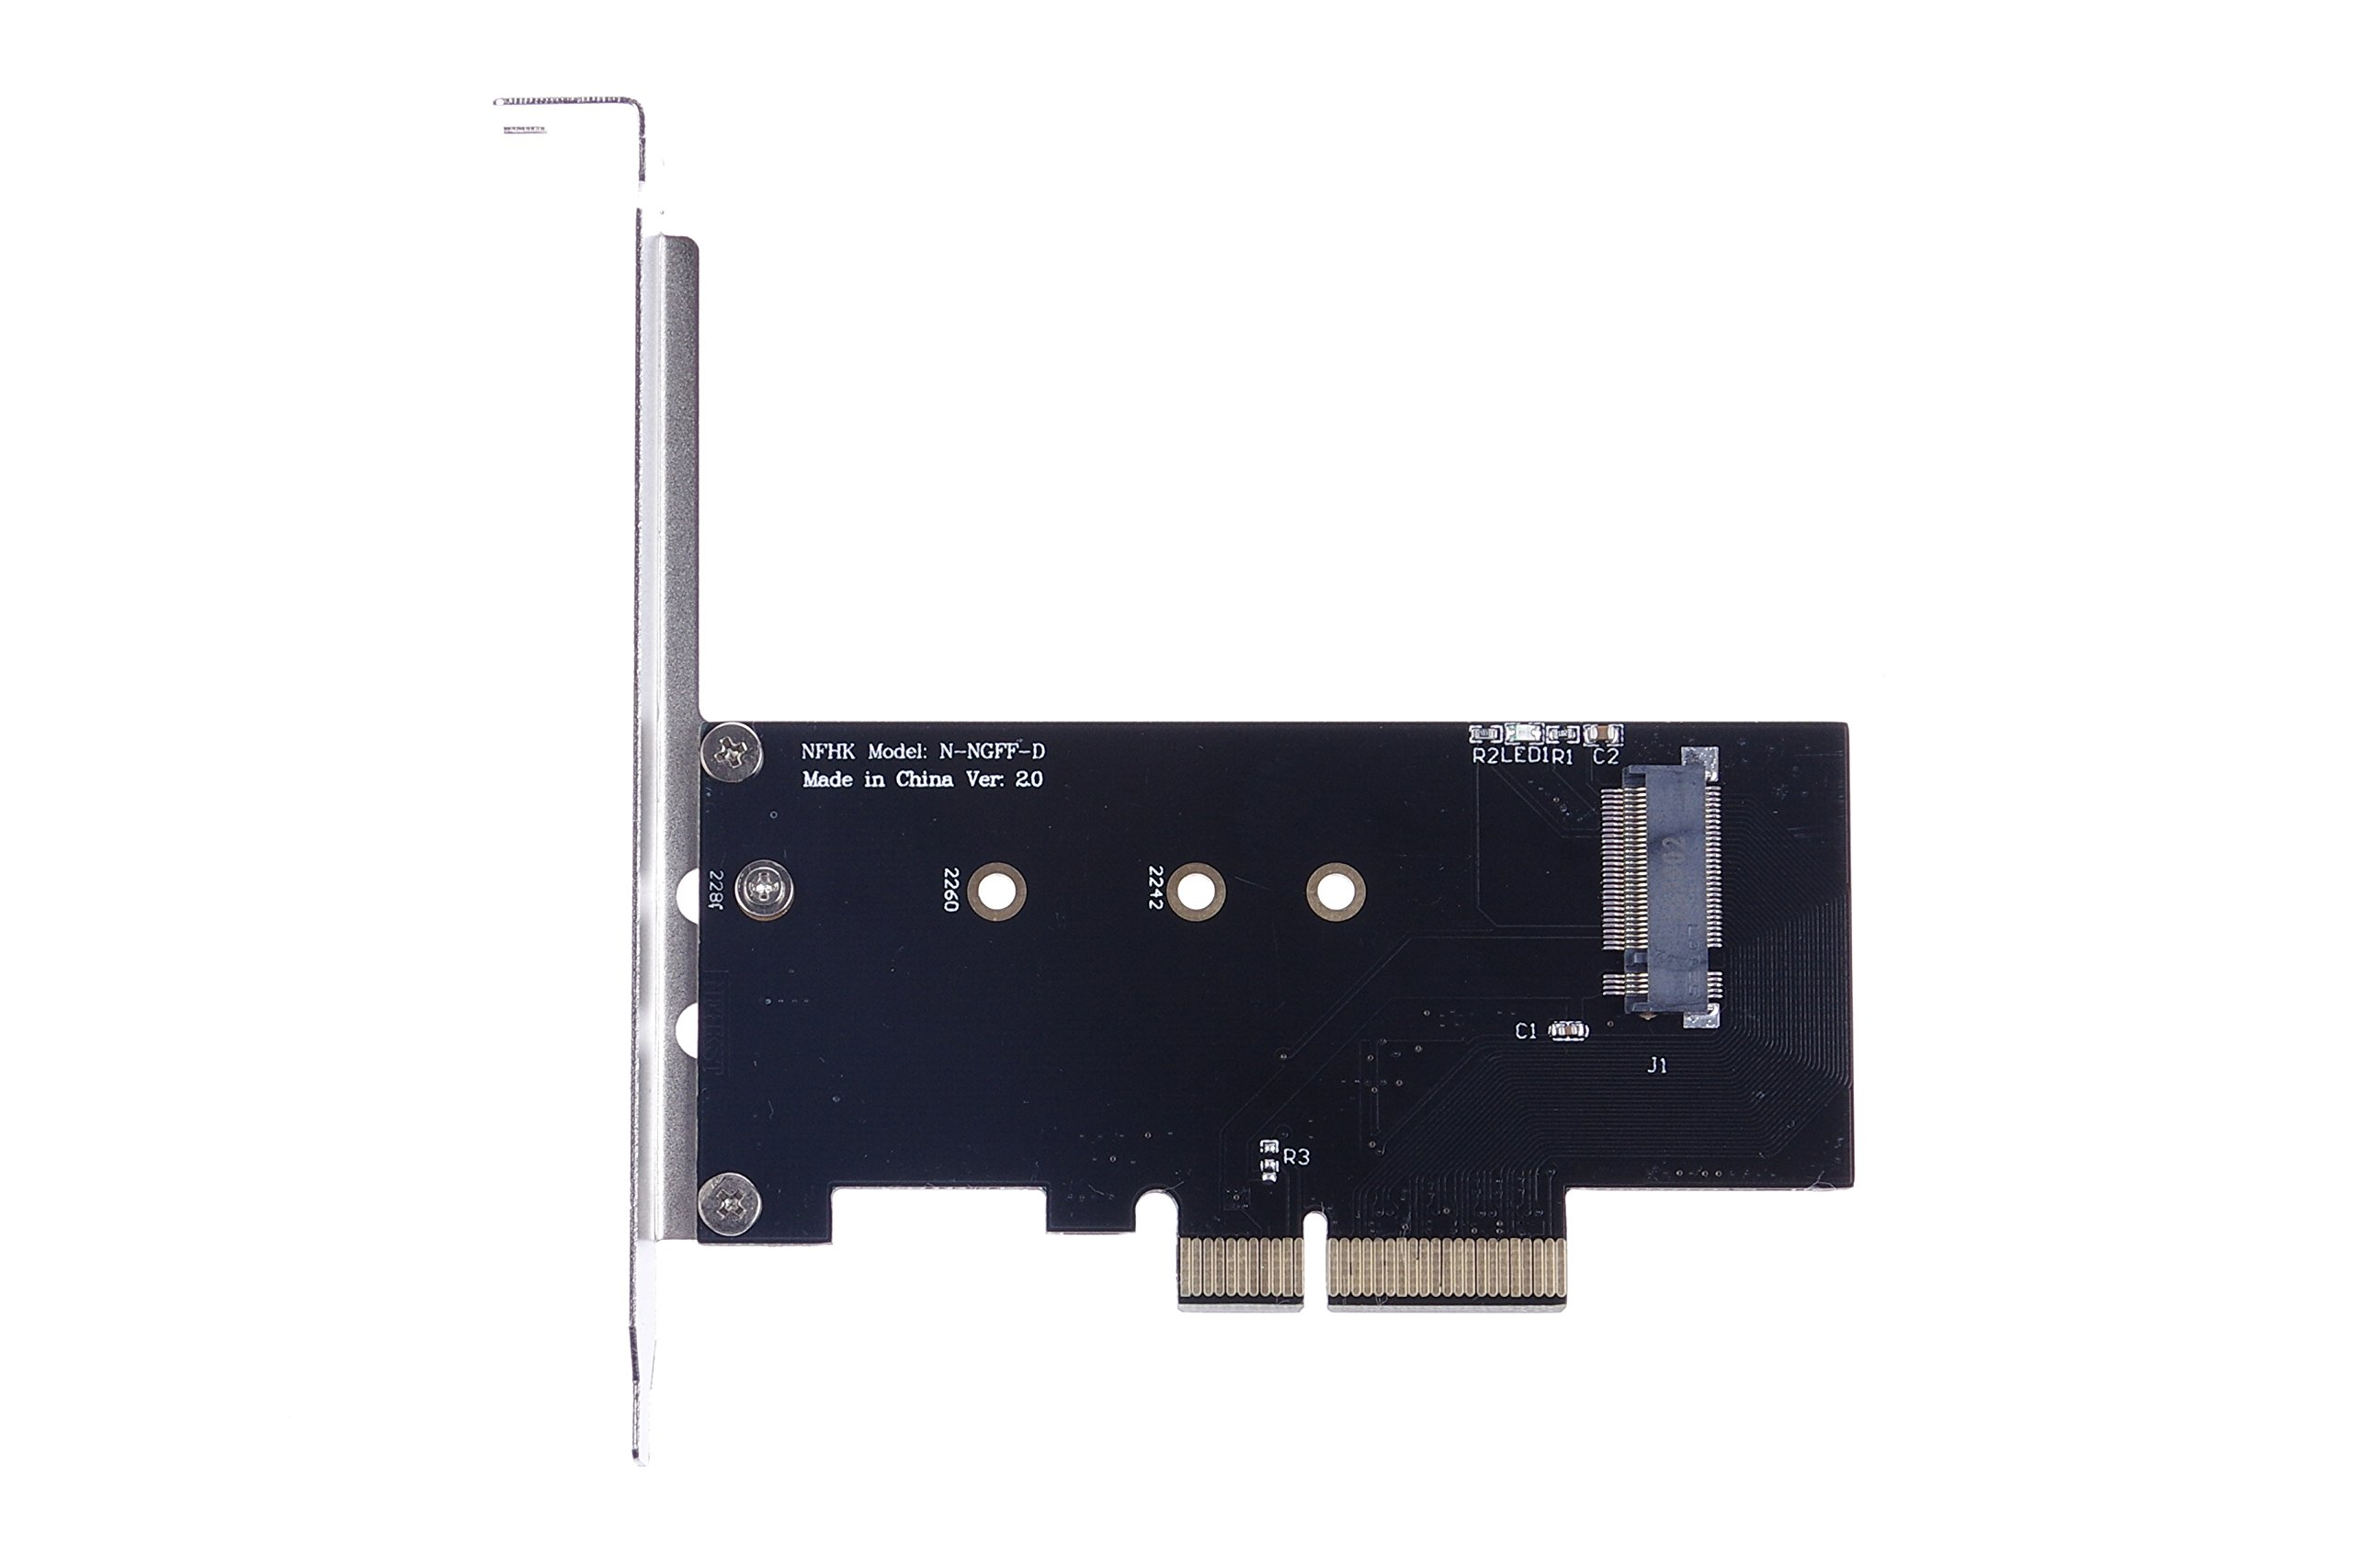 KNACRO M.2 NGFF PCIe x4 SSD to PCI-E x4 adapter card for the Samsung 950 PRO SM951 PM951